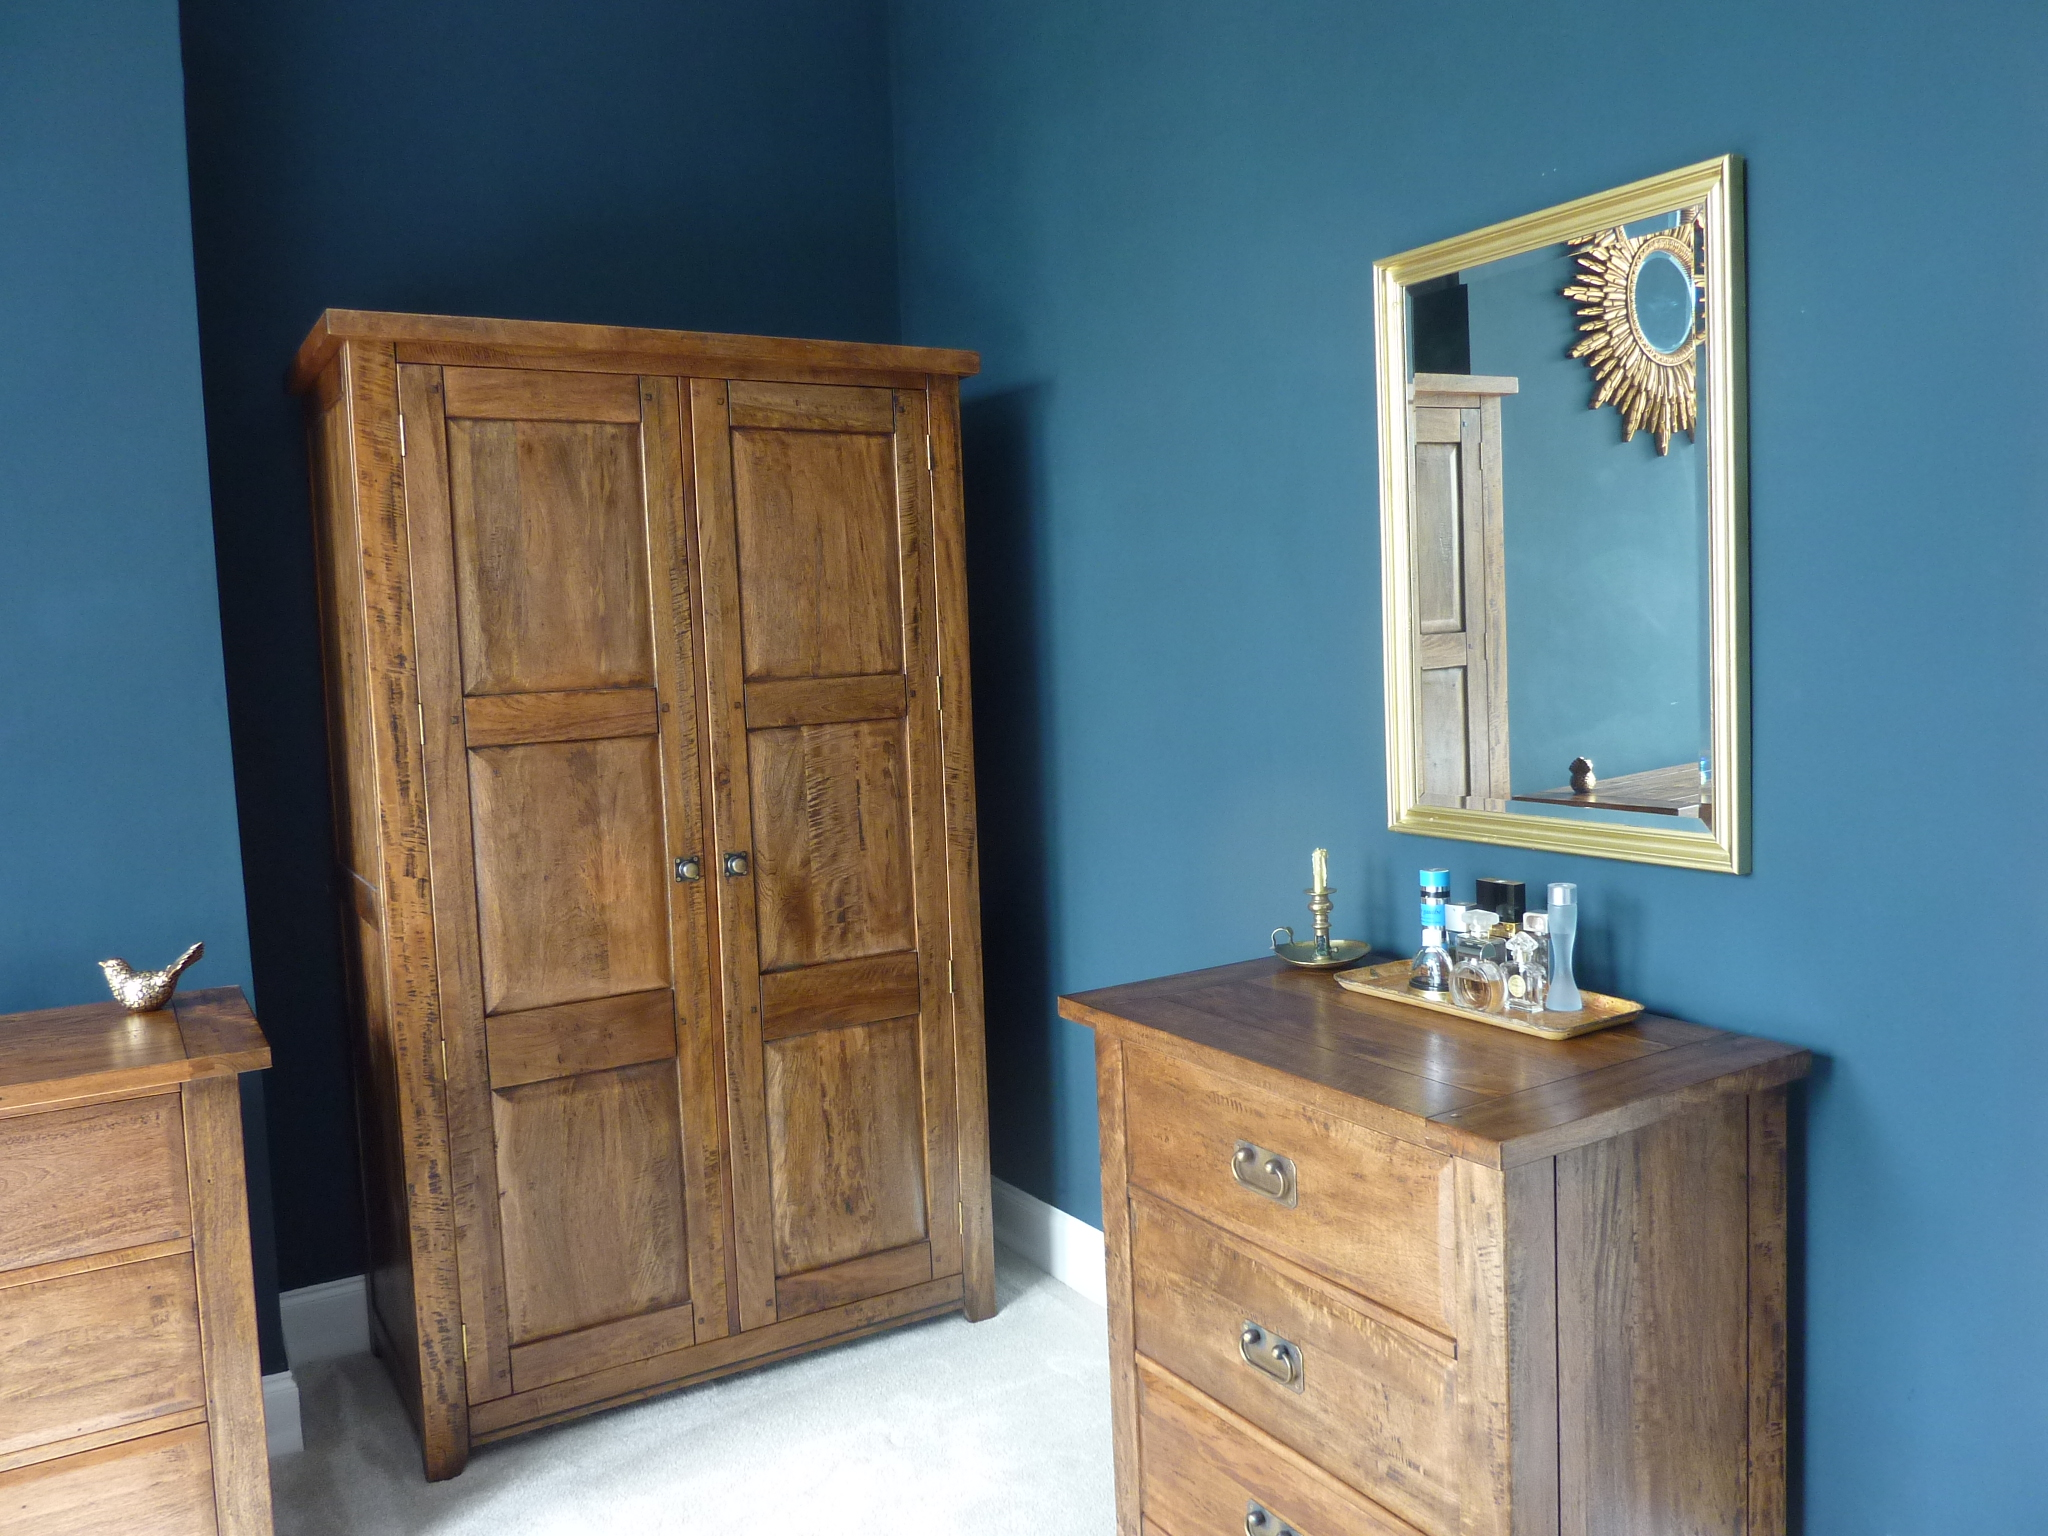 stonehouse furniture. barker and stonehouse furniture b